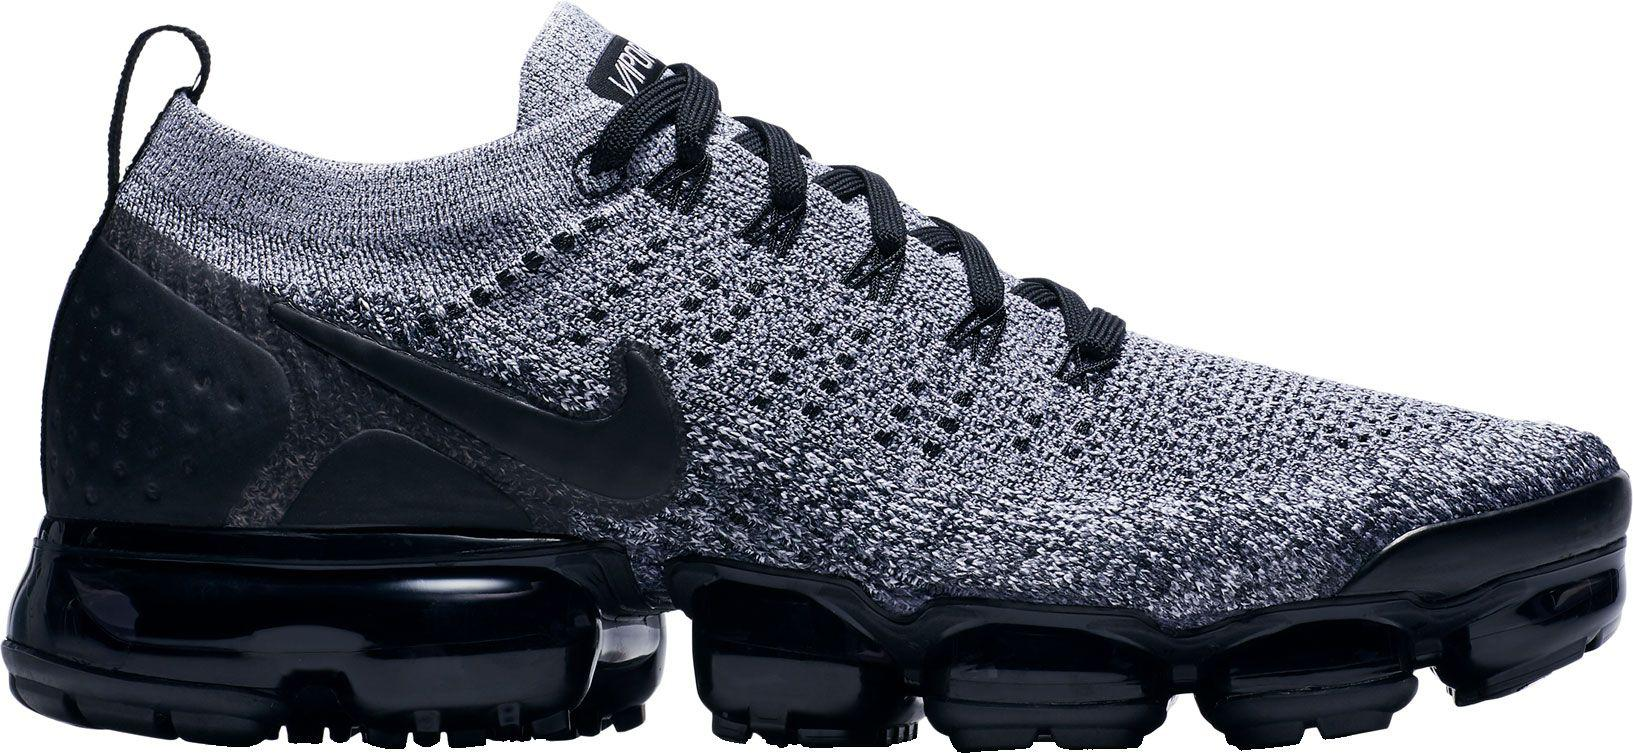 871f00f6b14289 Lyst - Nike Air Vapormax Flyknit 2 Running Shoes in Black for Men